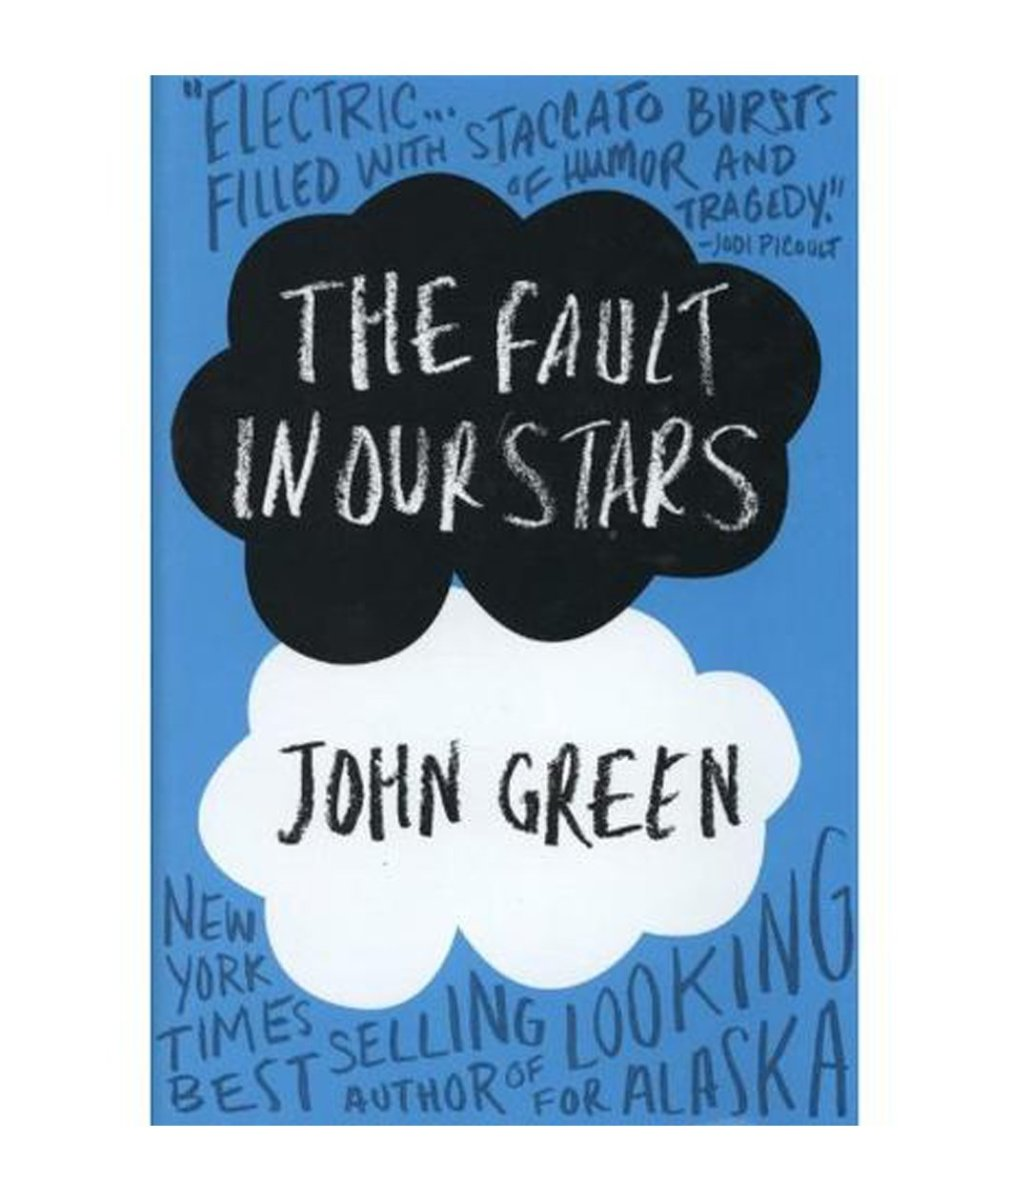 Enthralling Books Like 'The Fault in Our Stars'